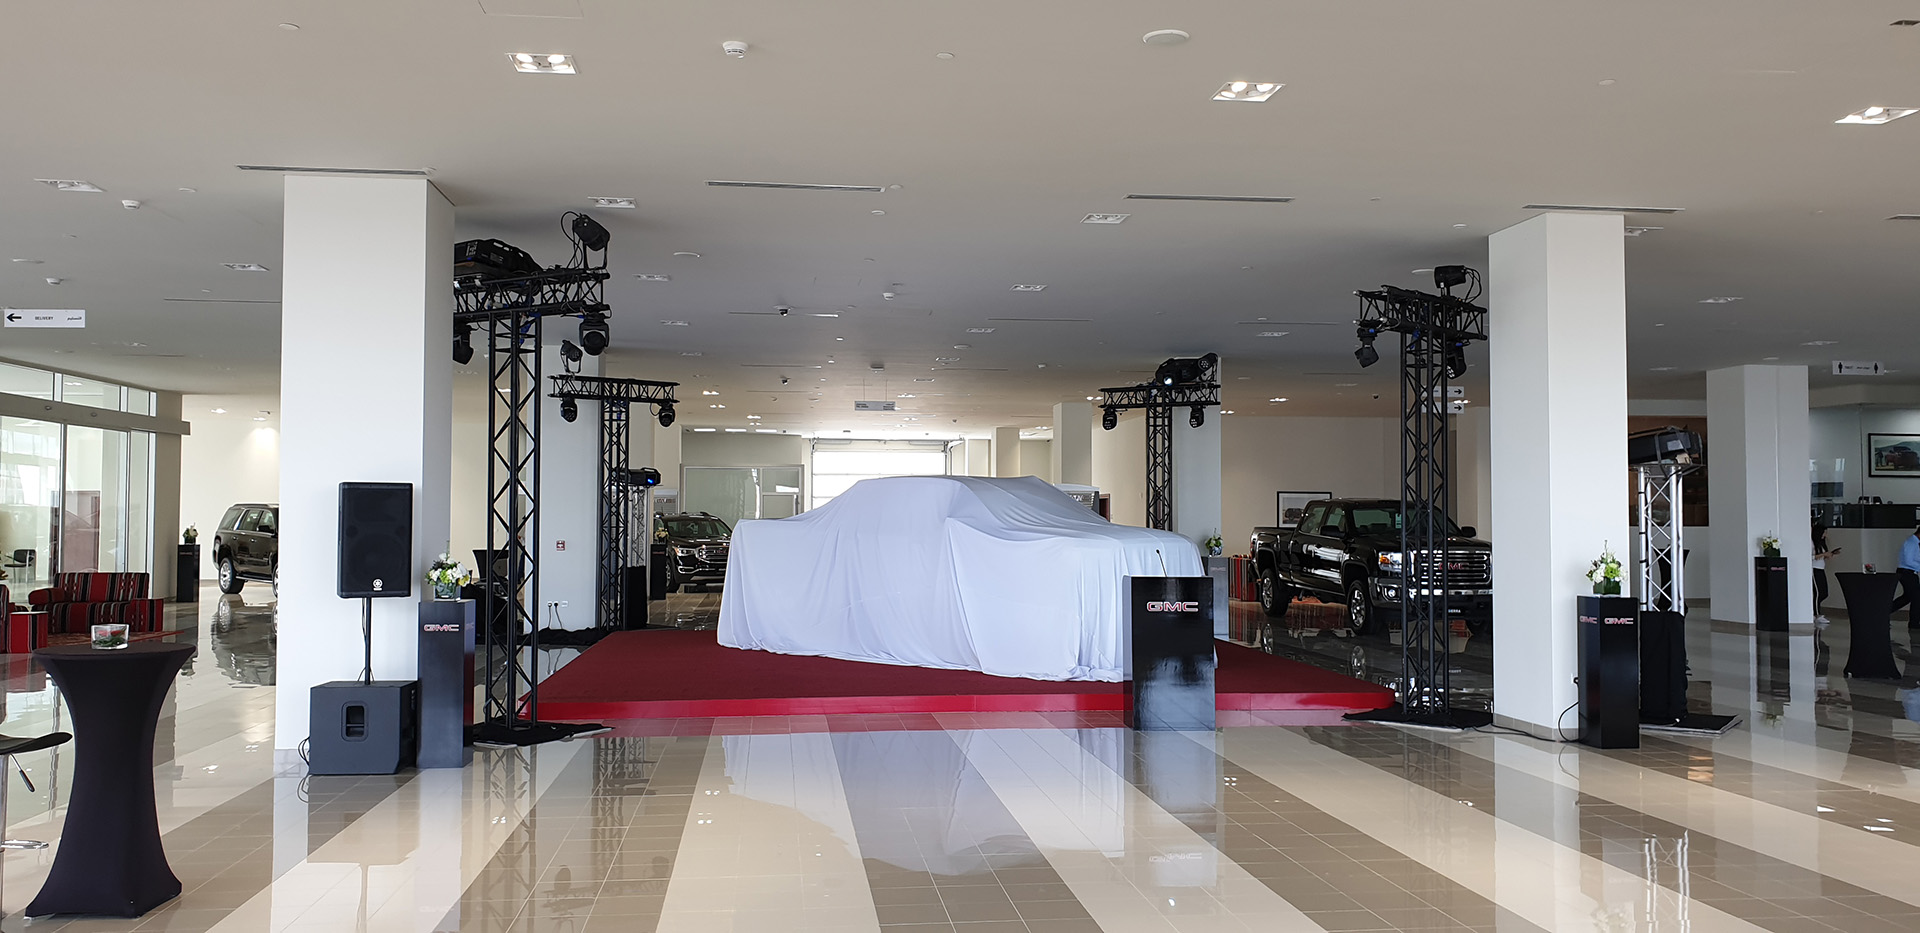 Event for the opening of the GMC and Cadillac showrooms and the launches of the 2019 GMC Sierra, Cadillac XT4, XT5 and XT6 - designed, produced and managed by ME Visual, Qatar